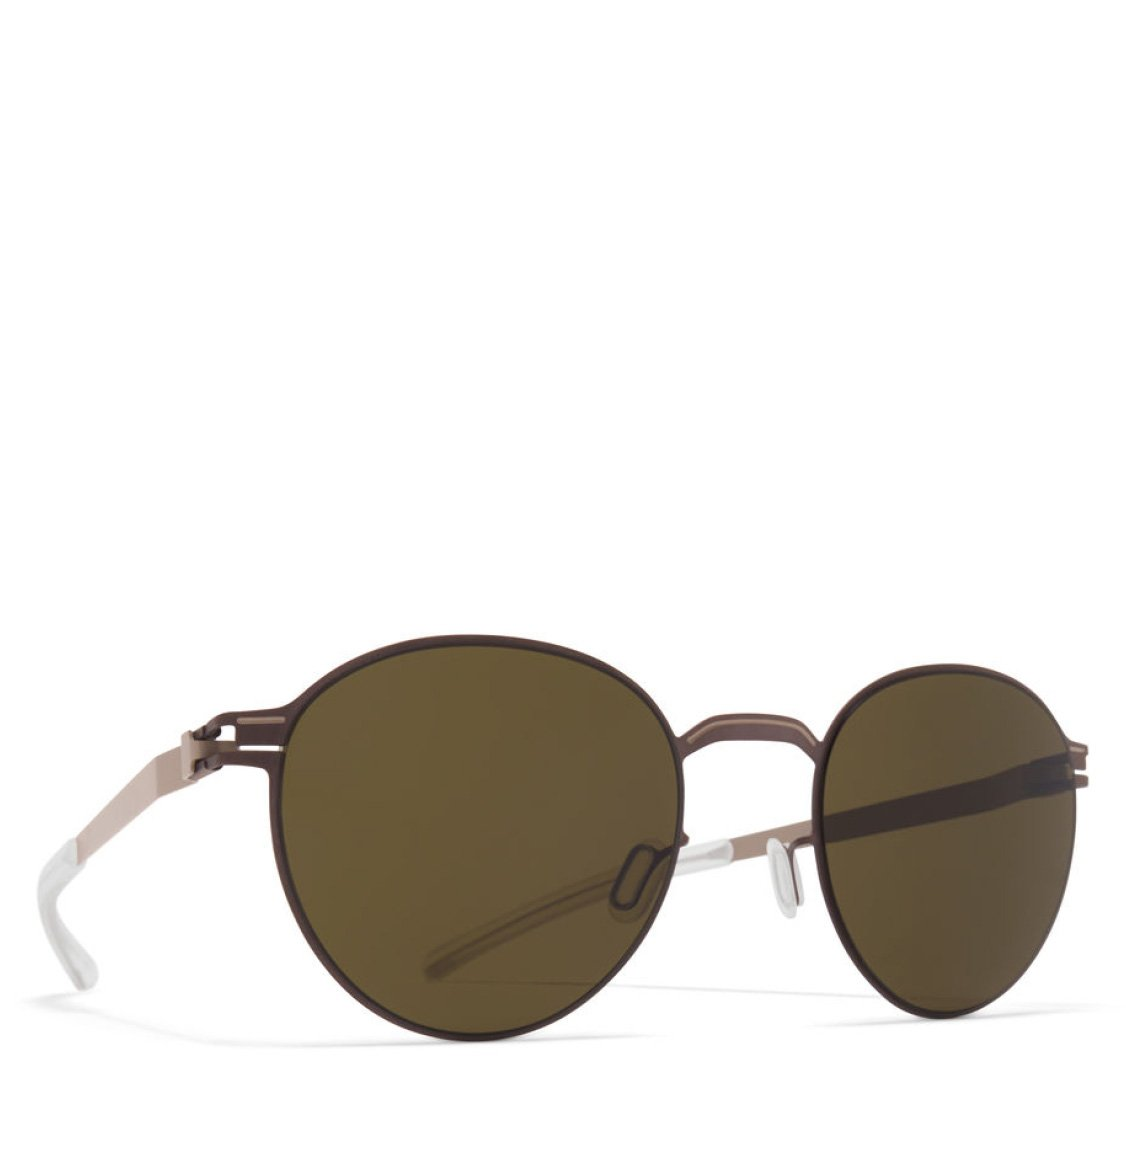 Mykita Panto Shaped Frame Mocca Sunglasses